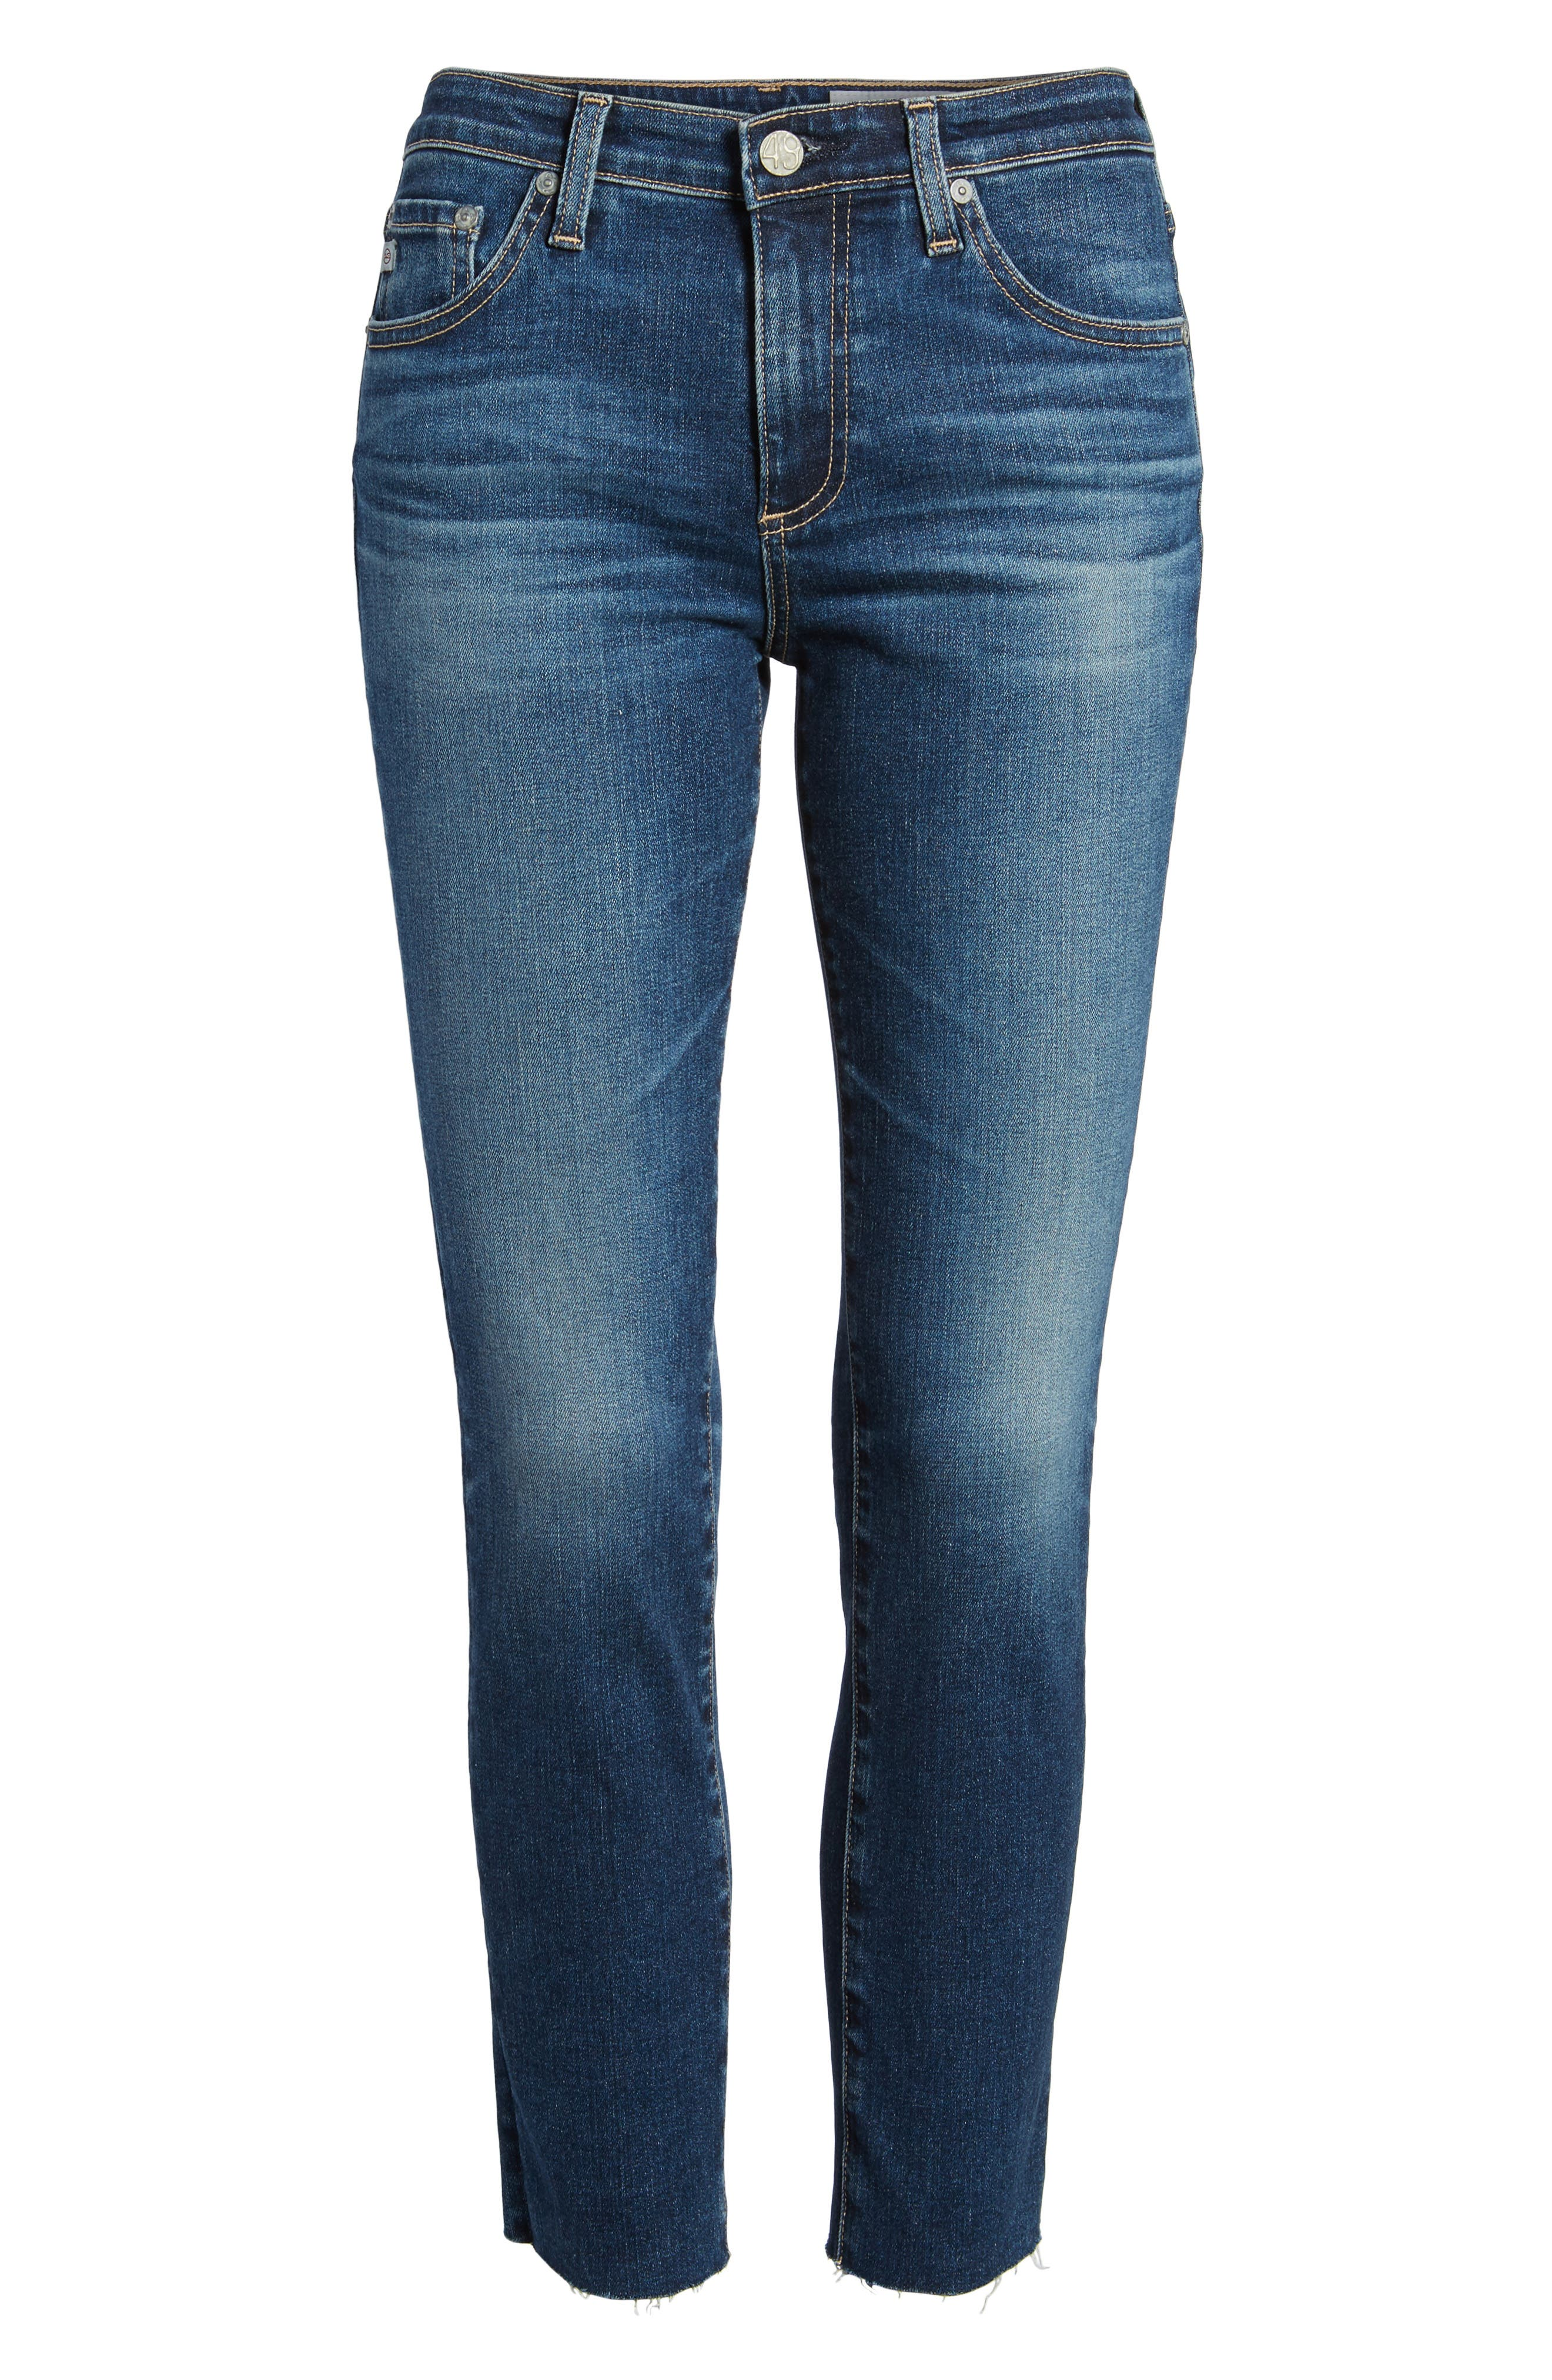 Prima Crop Skinny Jeans,                             Alternate thumbnail 7, color,                             5 Year Indigo Ave